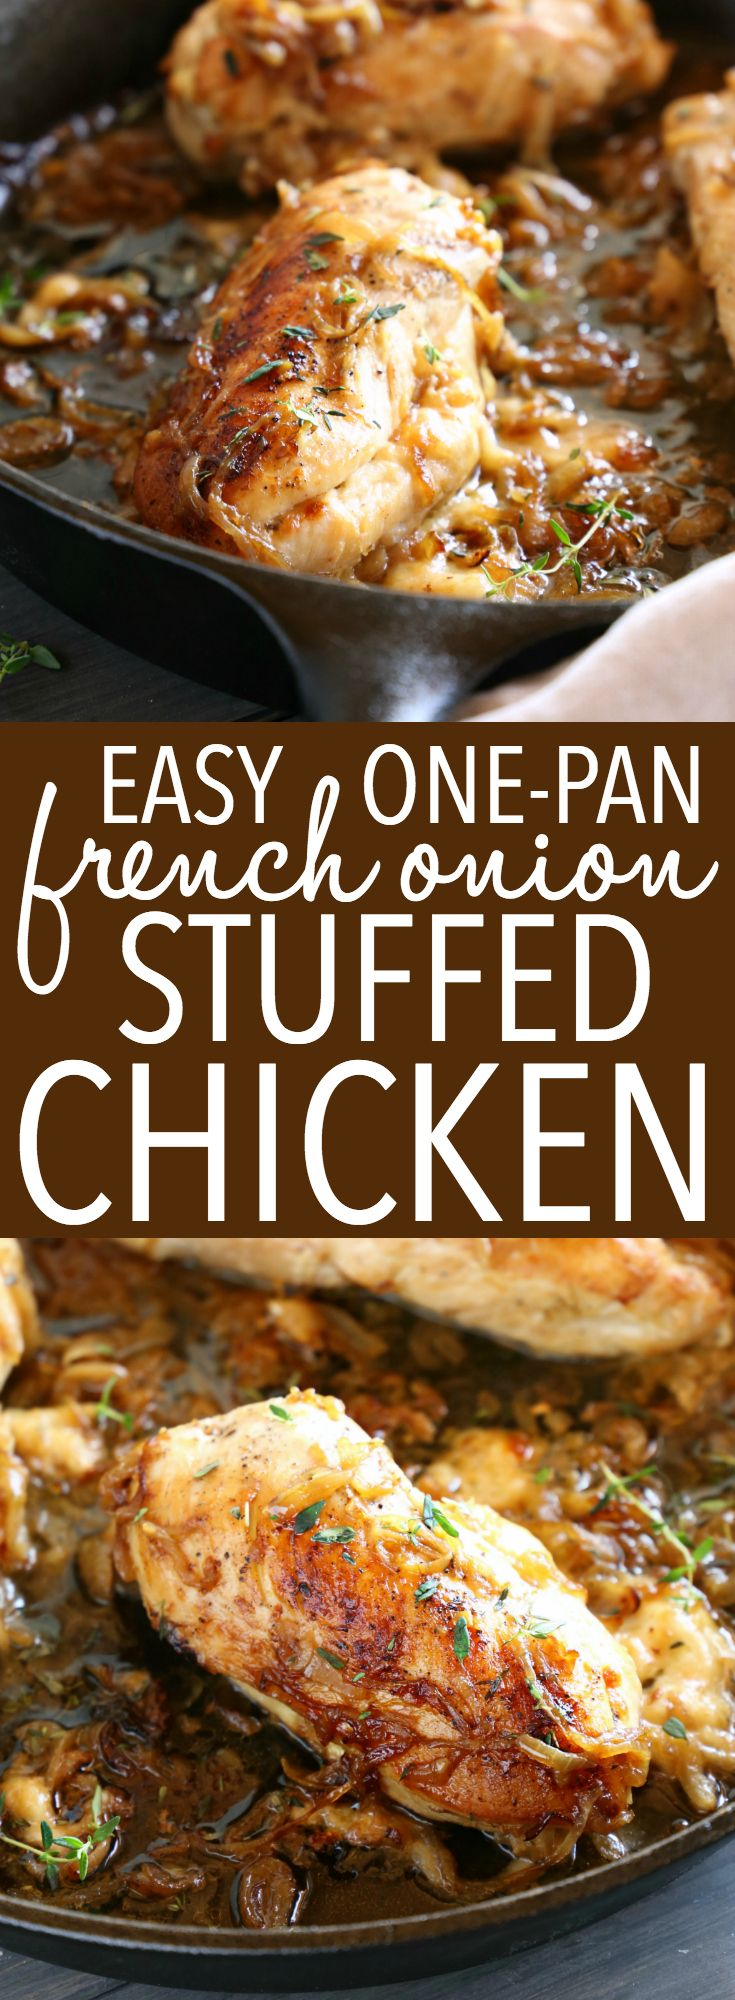 Easy One Pan French Onion Stuffed Chicken Recipe